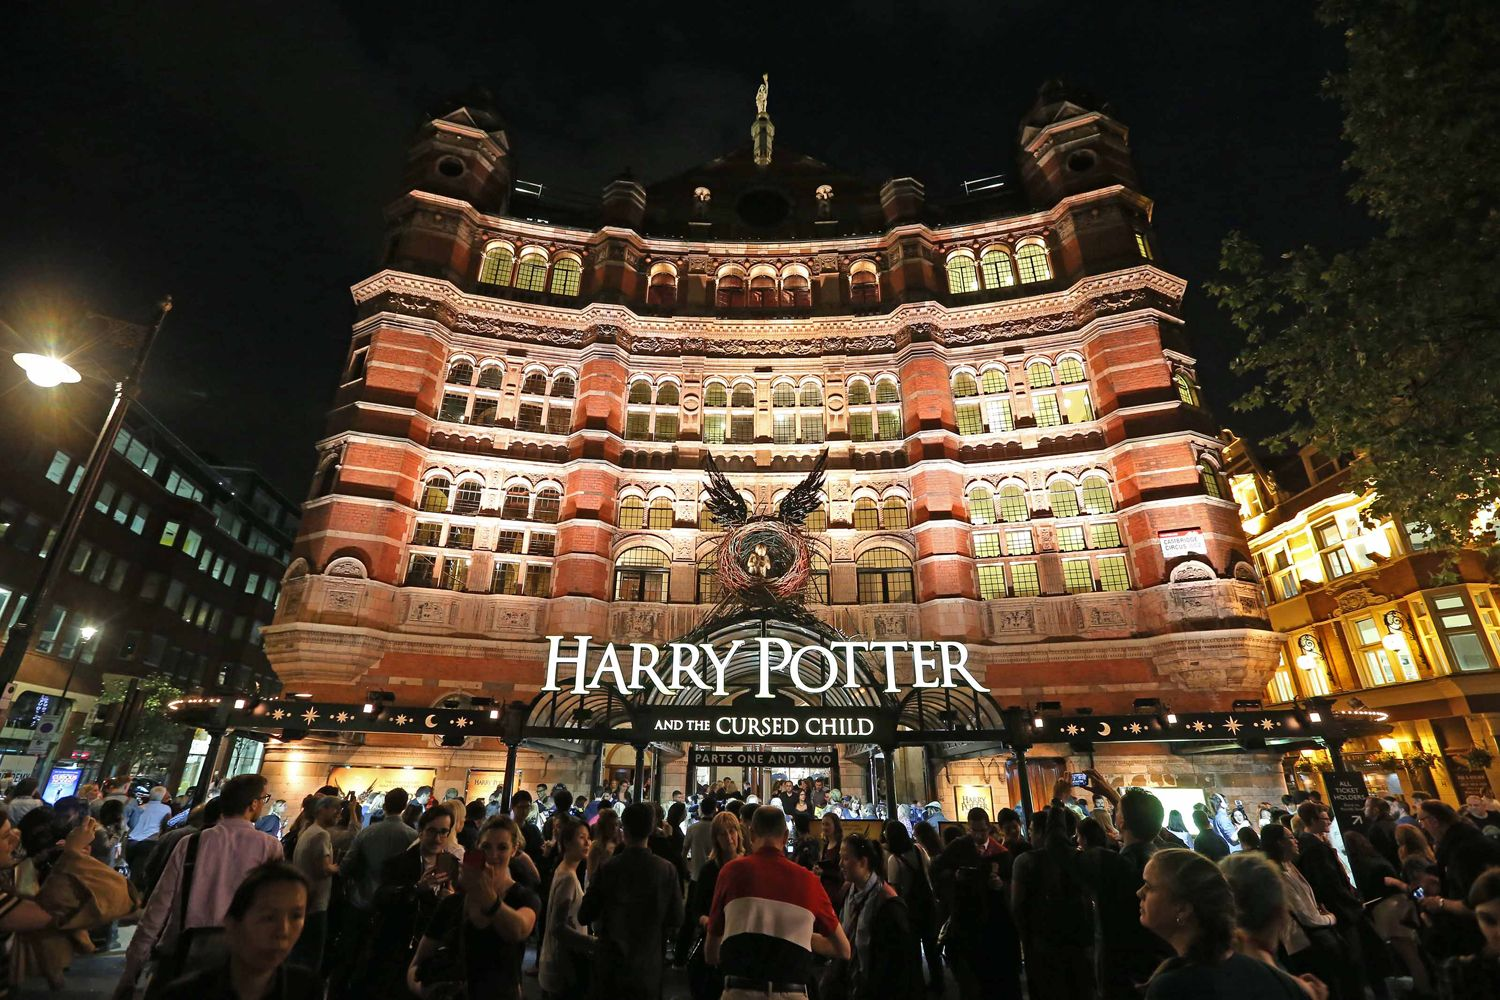 teatro do harry potter em Londres